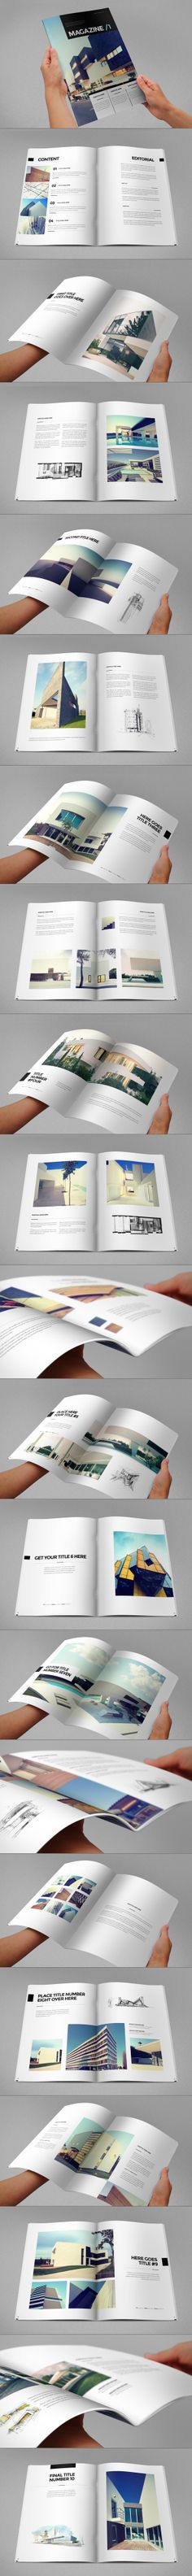 Architecture Minimal Magazine. Download here: http://graphicriver.net/item/architecture-minimal-magazine/6982340?ref=abradesign #magazine #design #architecture #portfolio